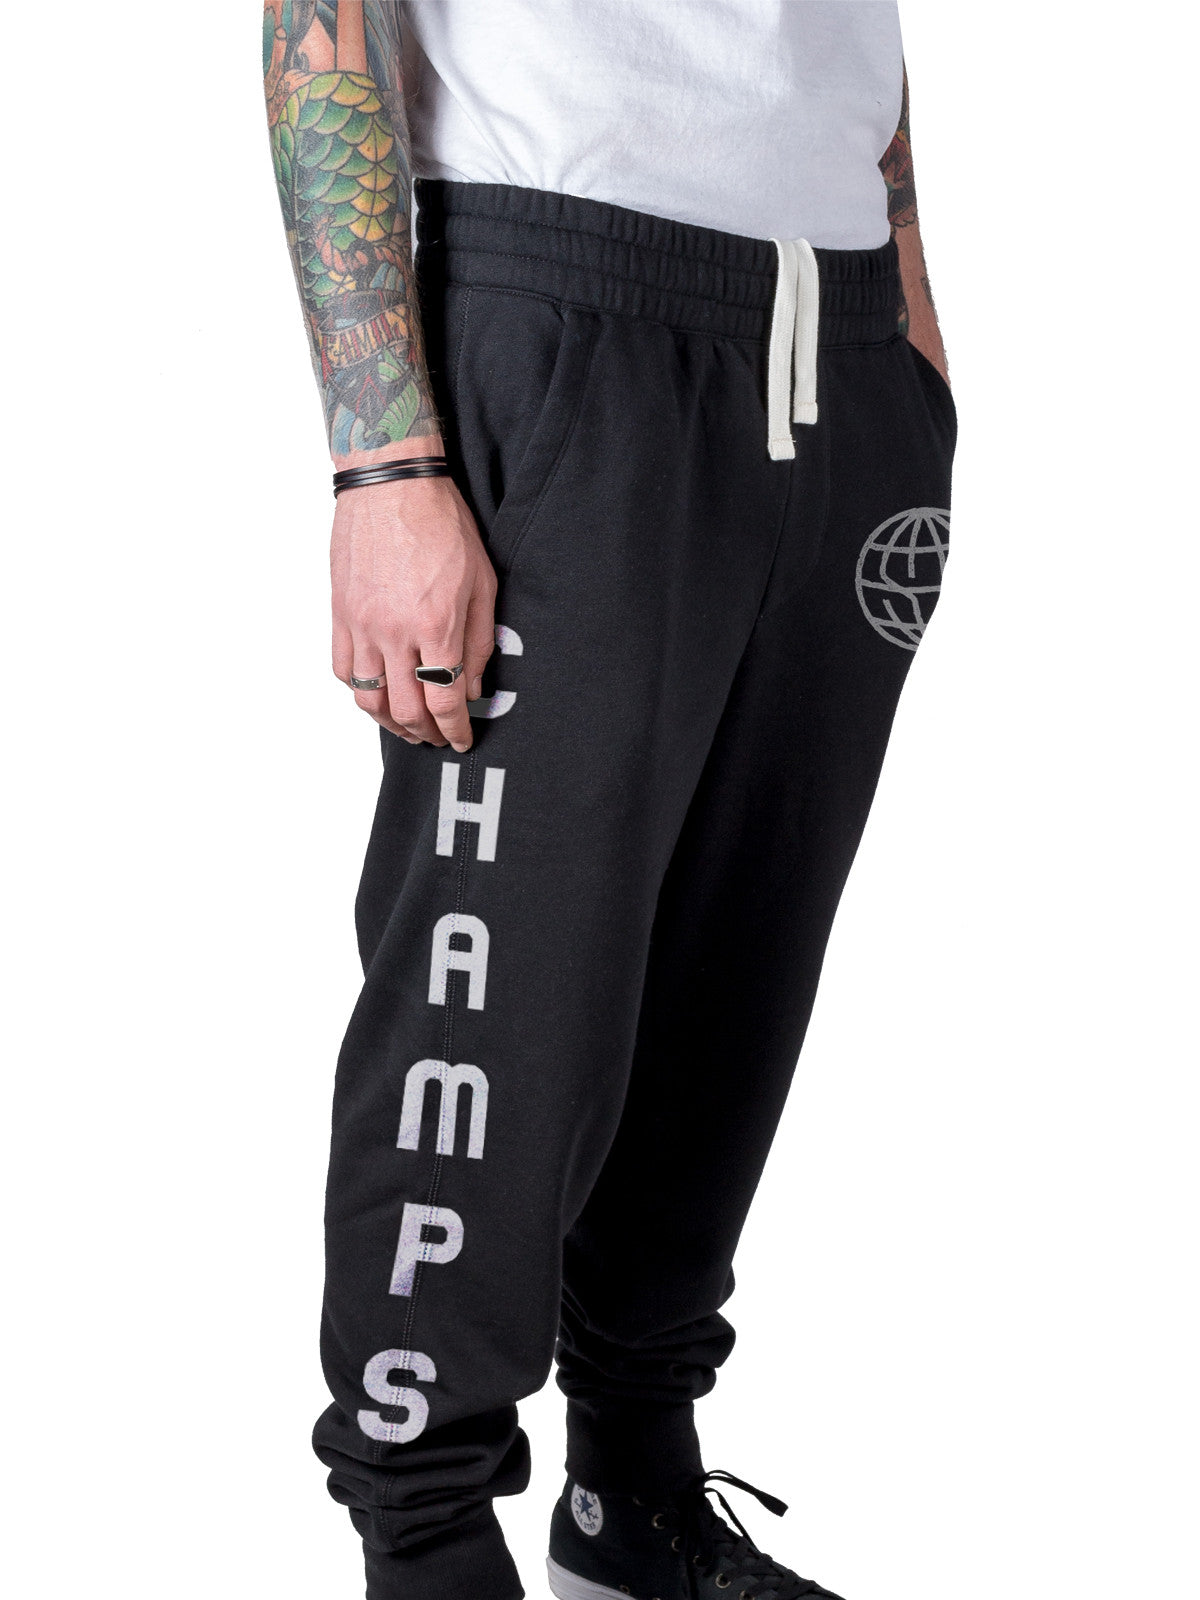 State Champs - CHAMPS Joggers - Merch Limited